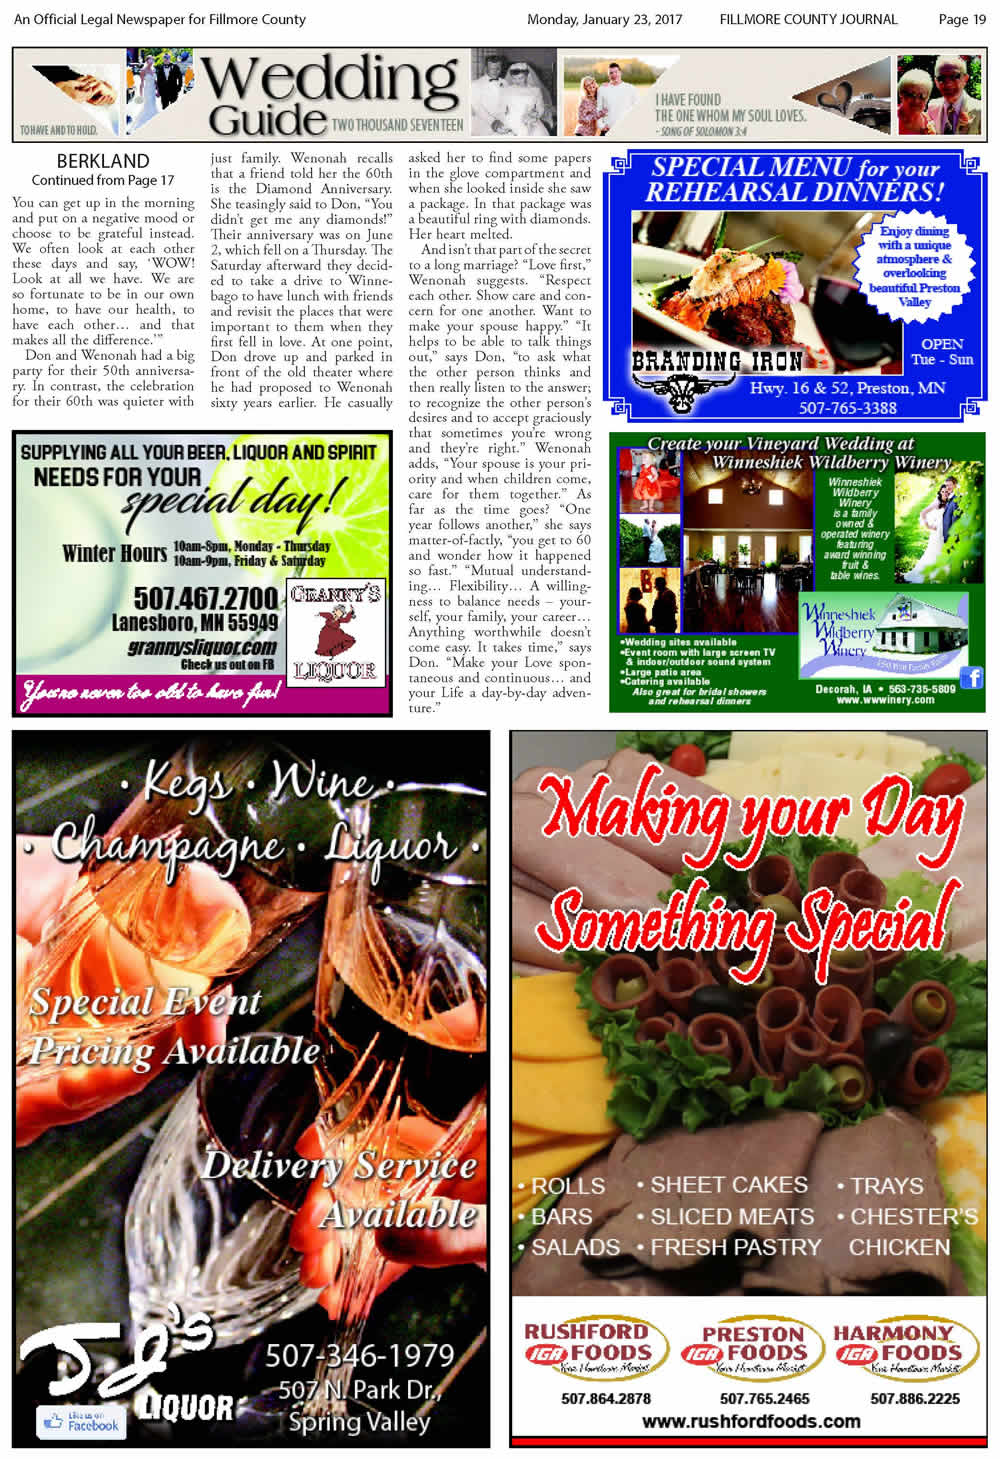 Fillmore County Journal - Wedding Guide 2017